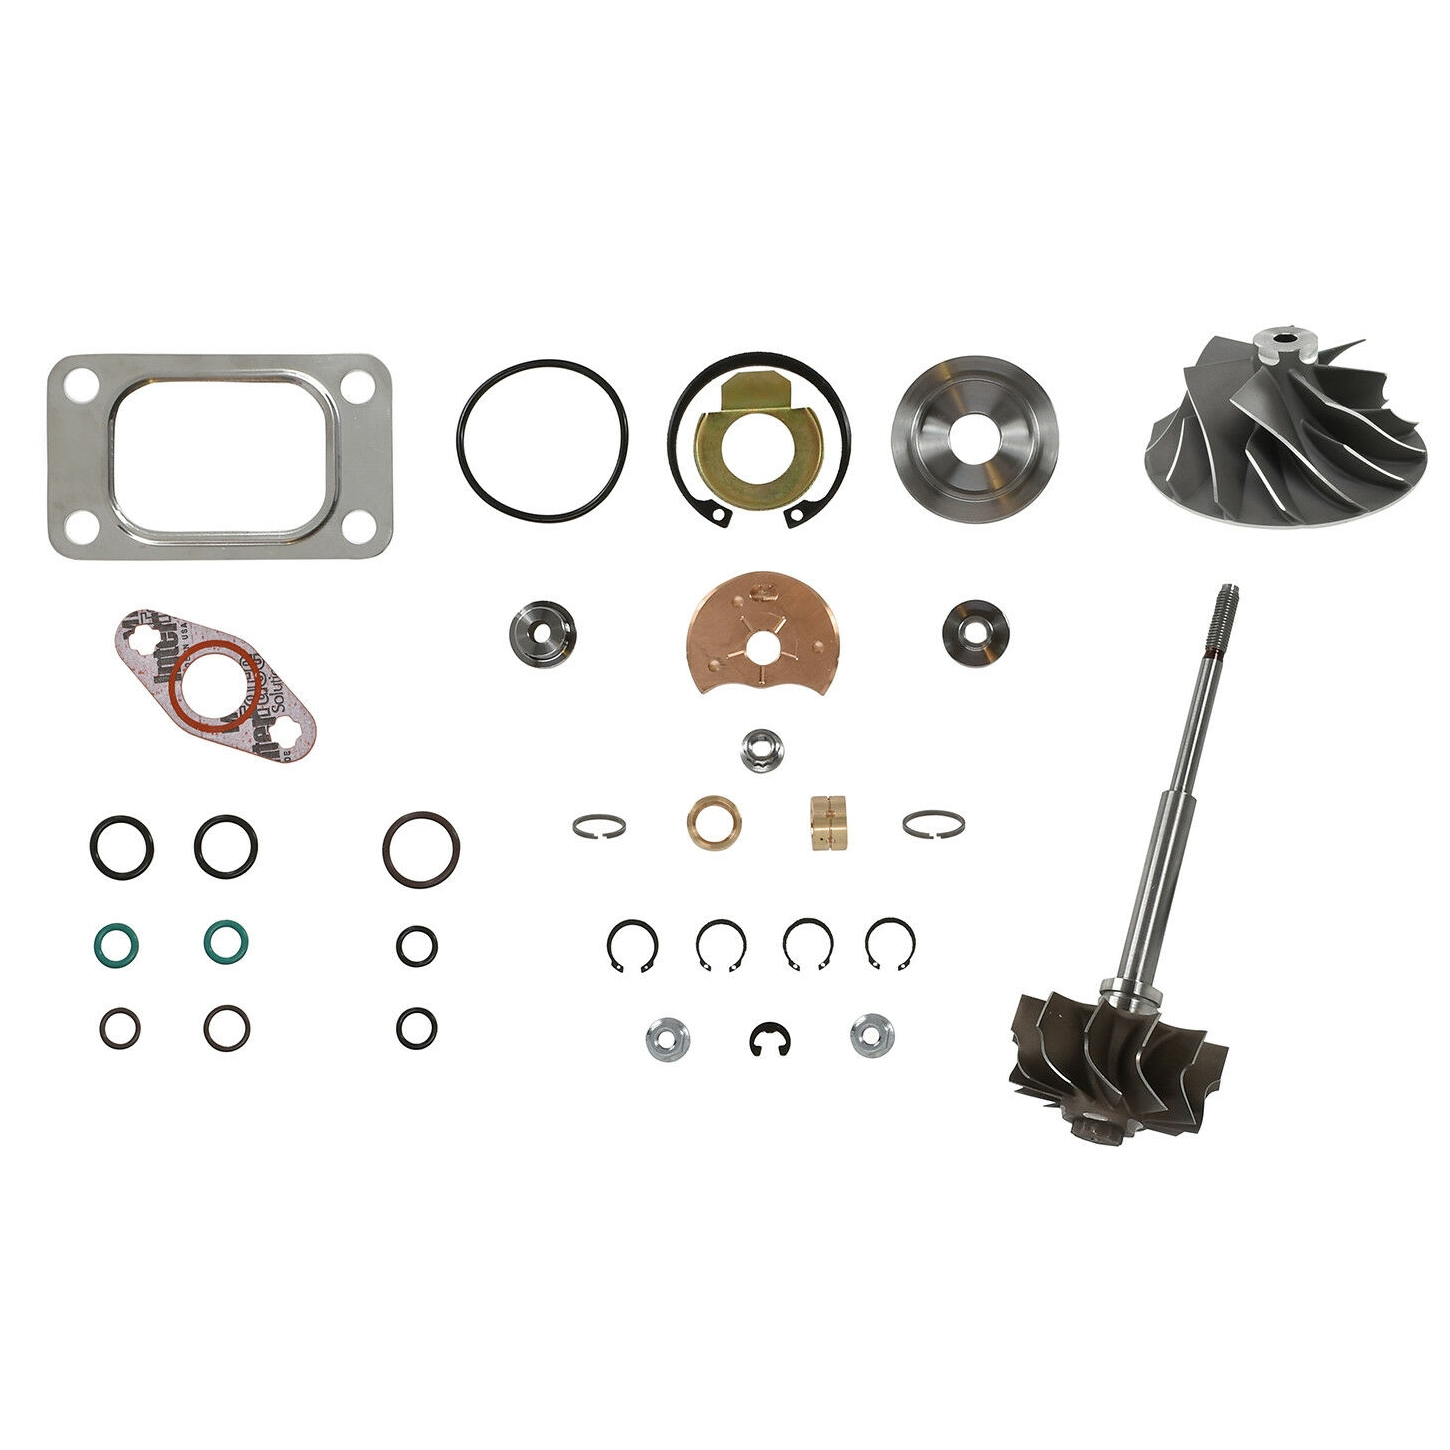 HE351CW Turbo Rebuild Kit Cast Wheel Turbine Shaft For 04.5-07 5.9L ISB Dodge Ram Cummins Diesel